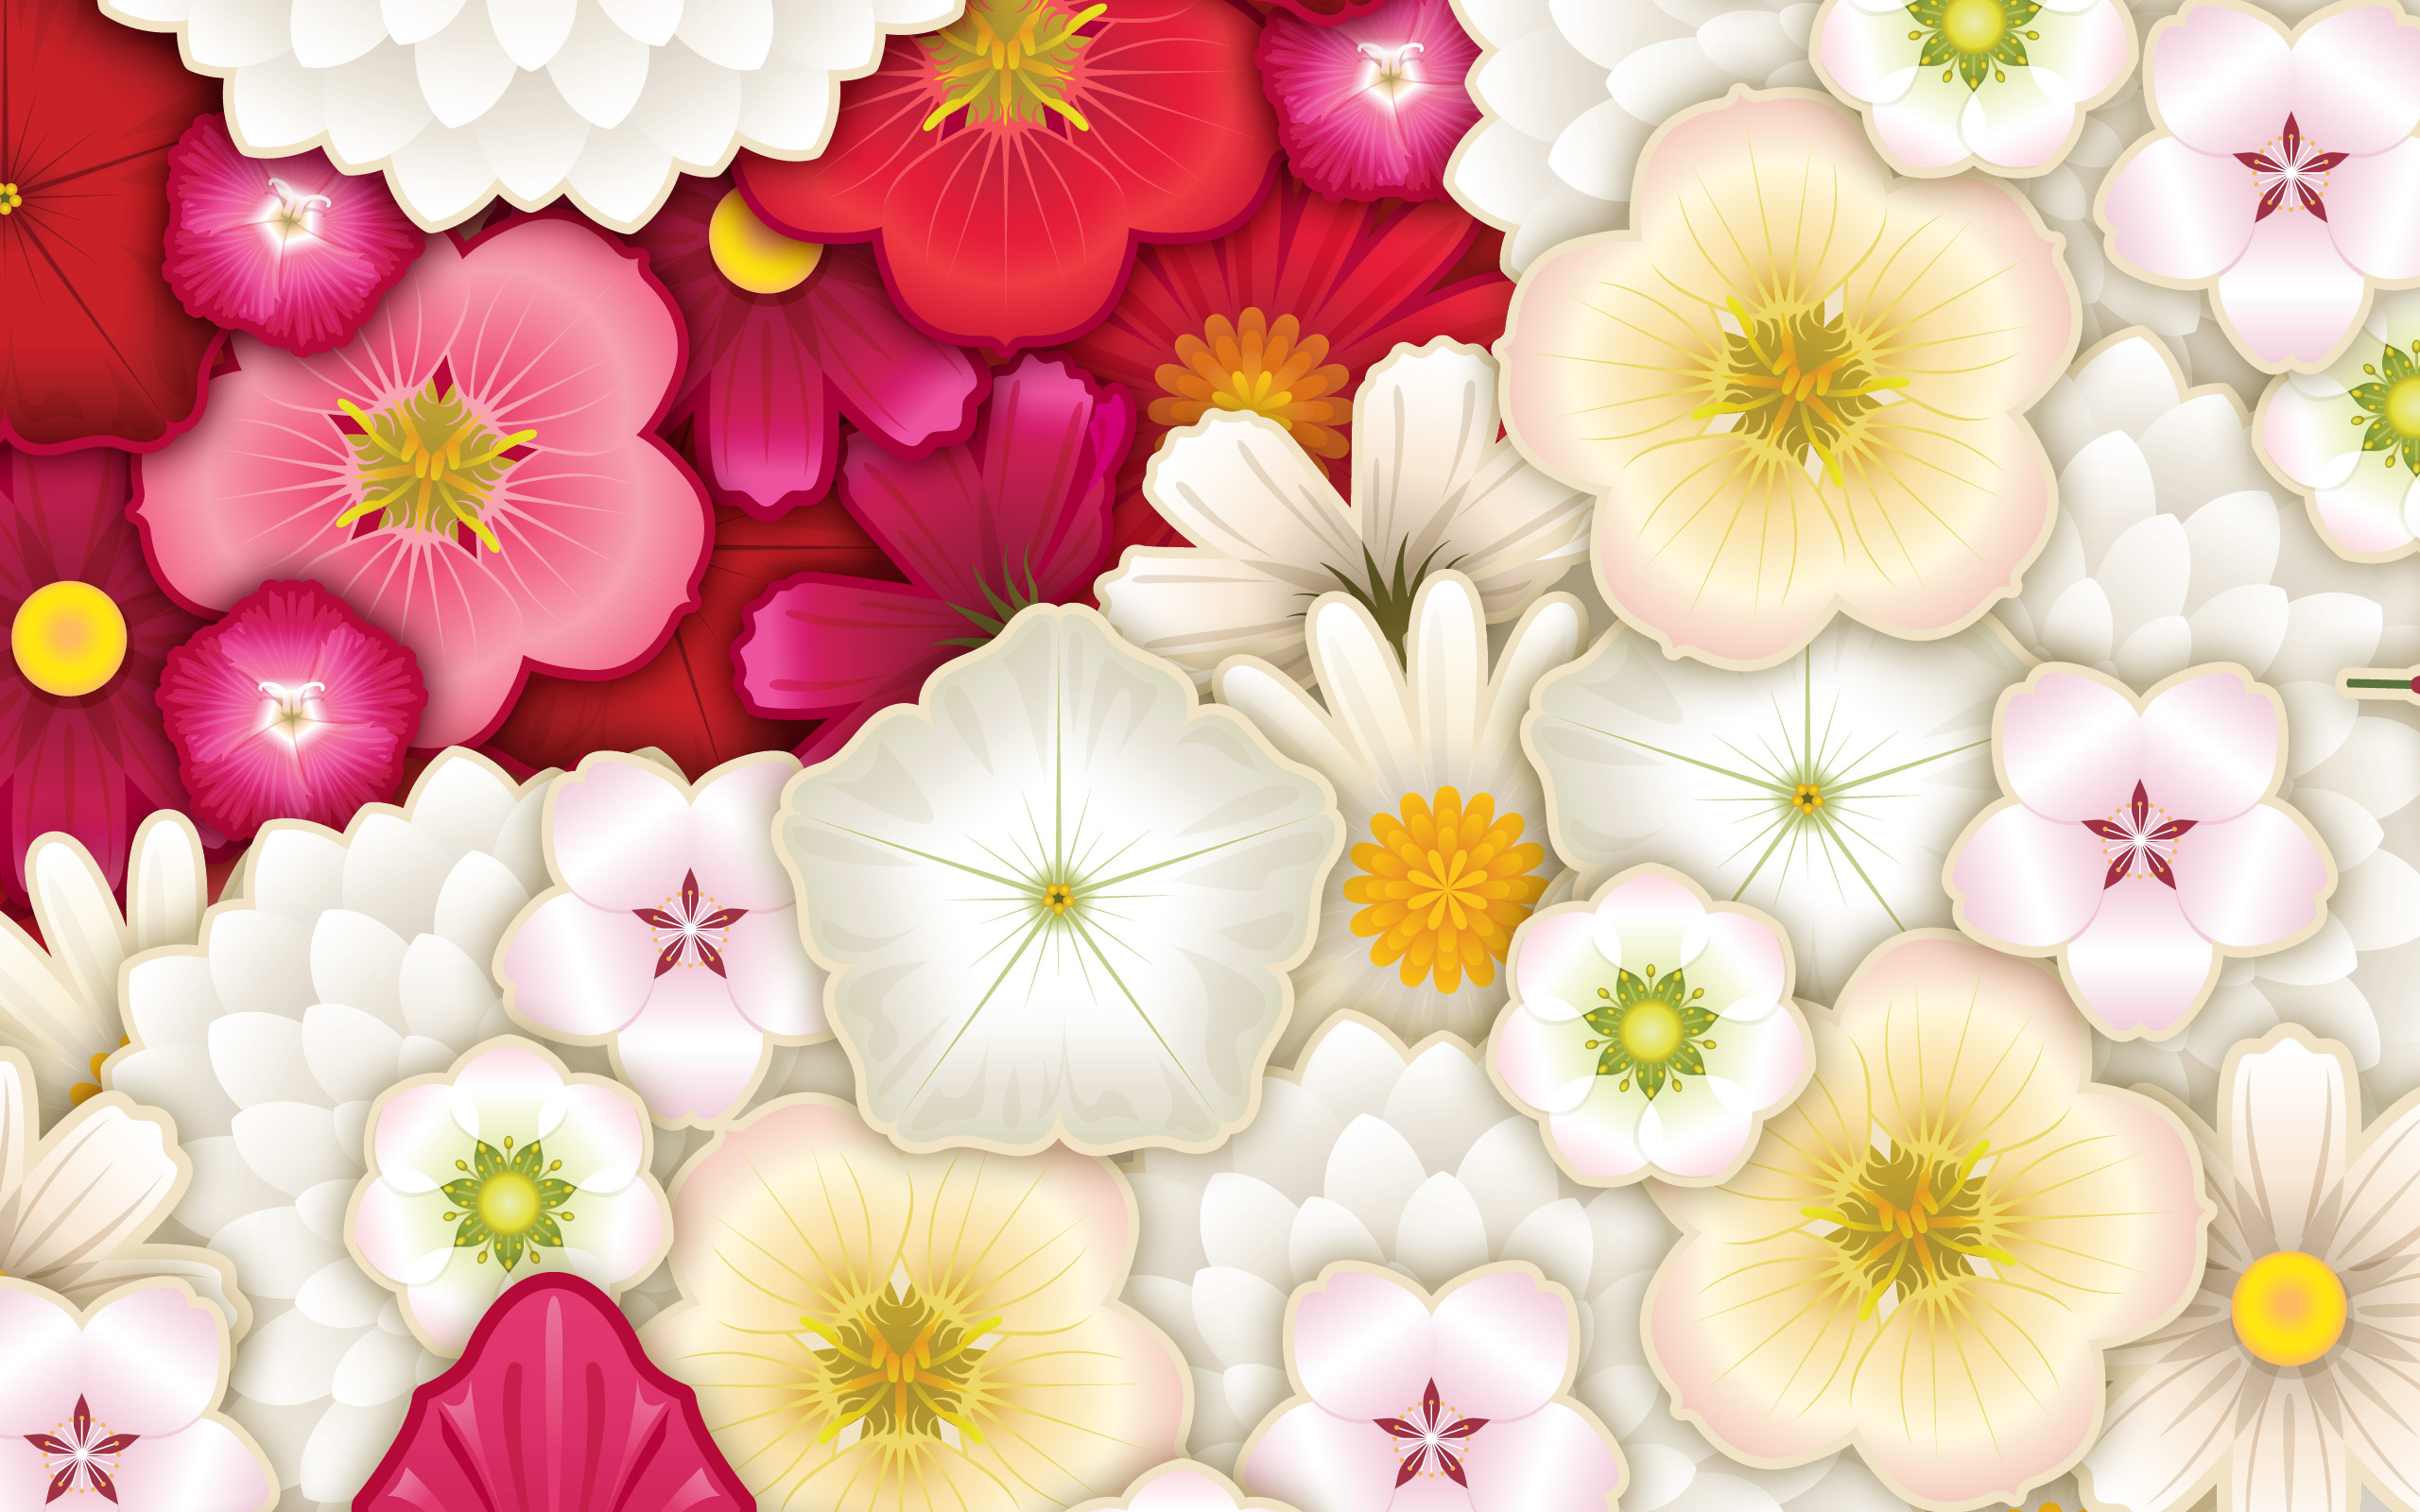 Artistic - Flower  Wallpaper